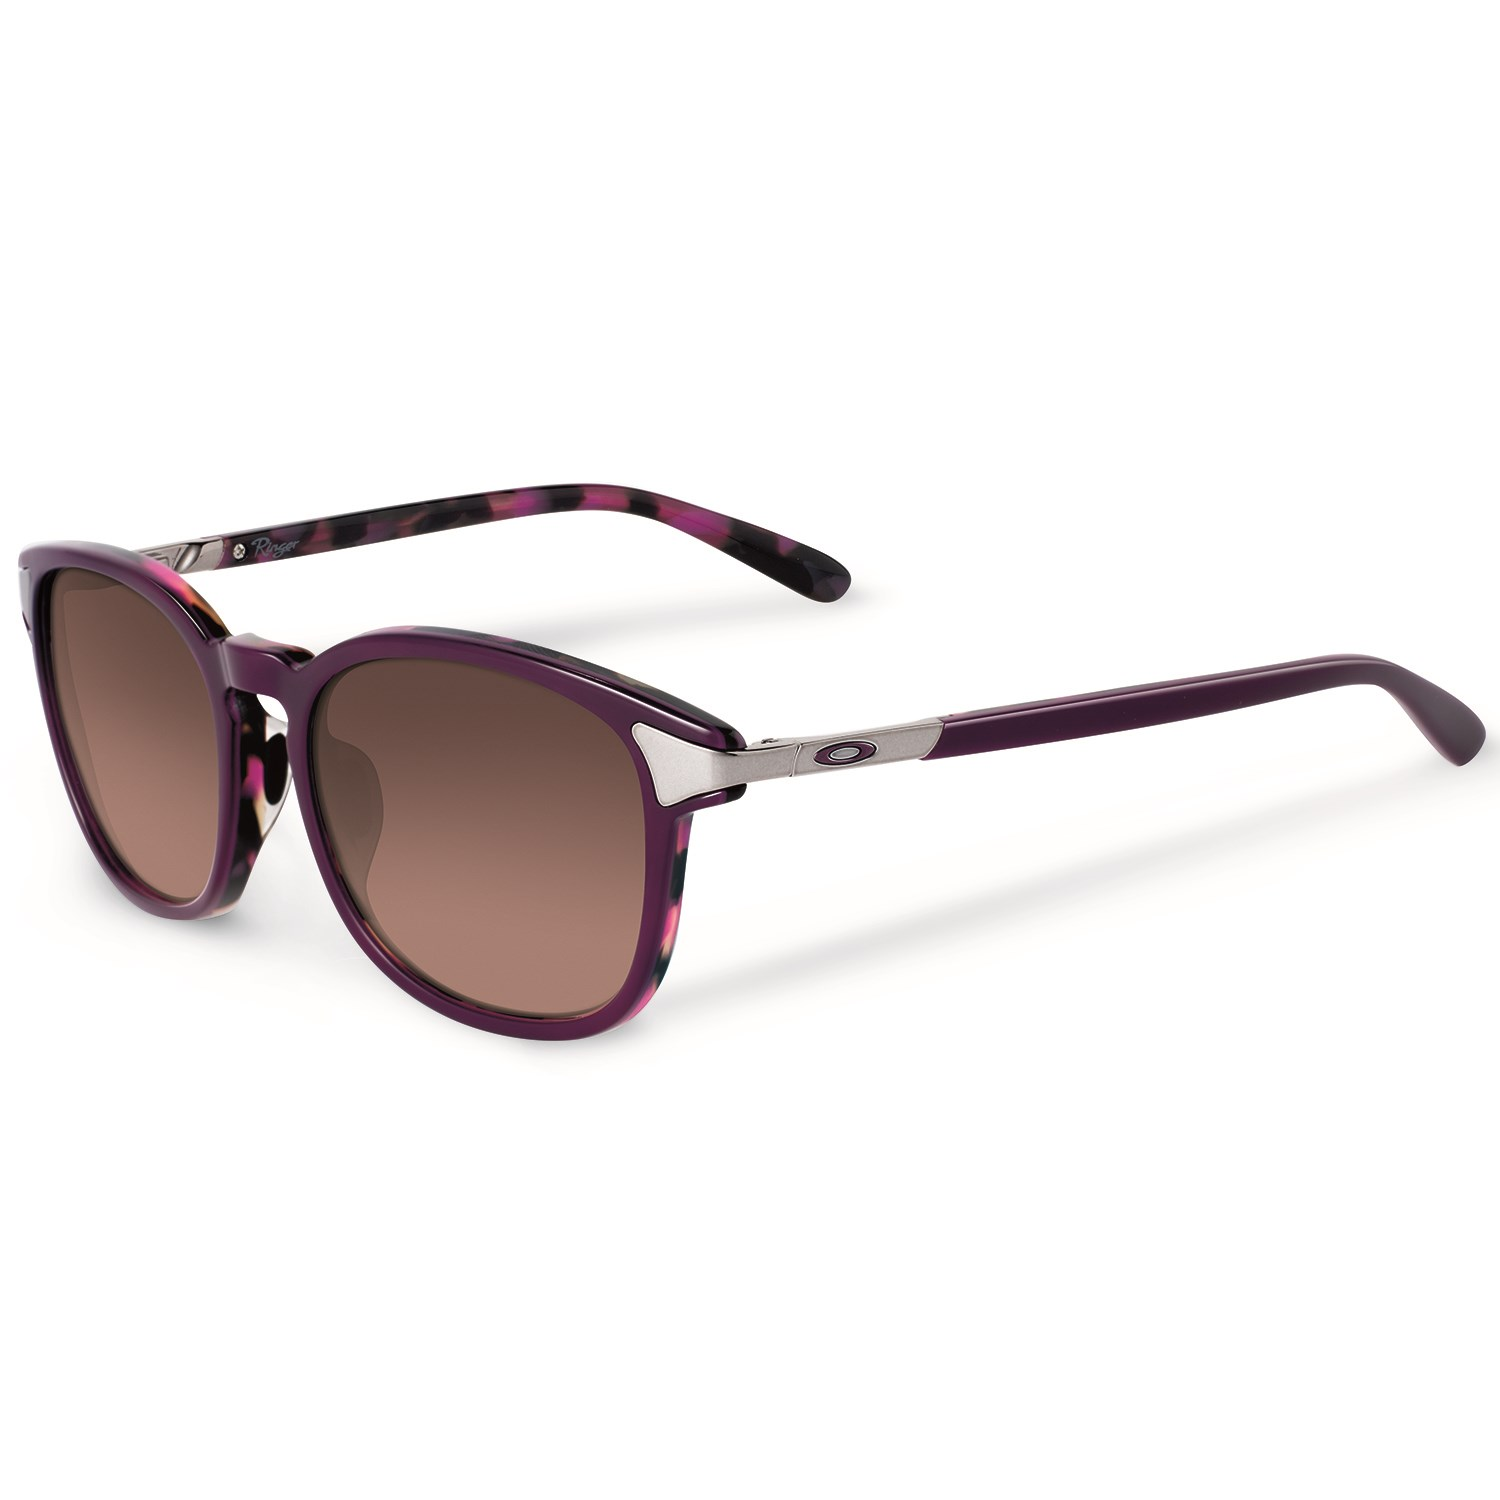 oakley sunglasses for womens  oakley ringer sunglasses women s purple mosaic g40 black gradient